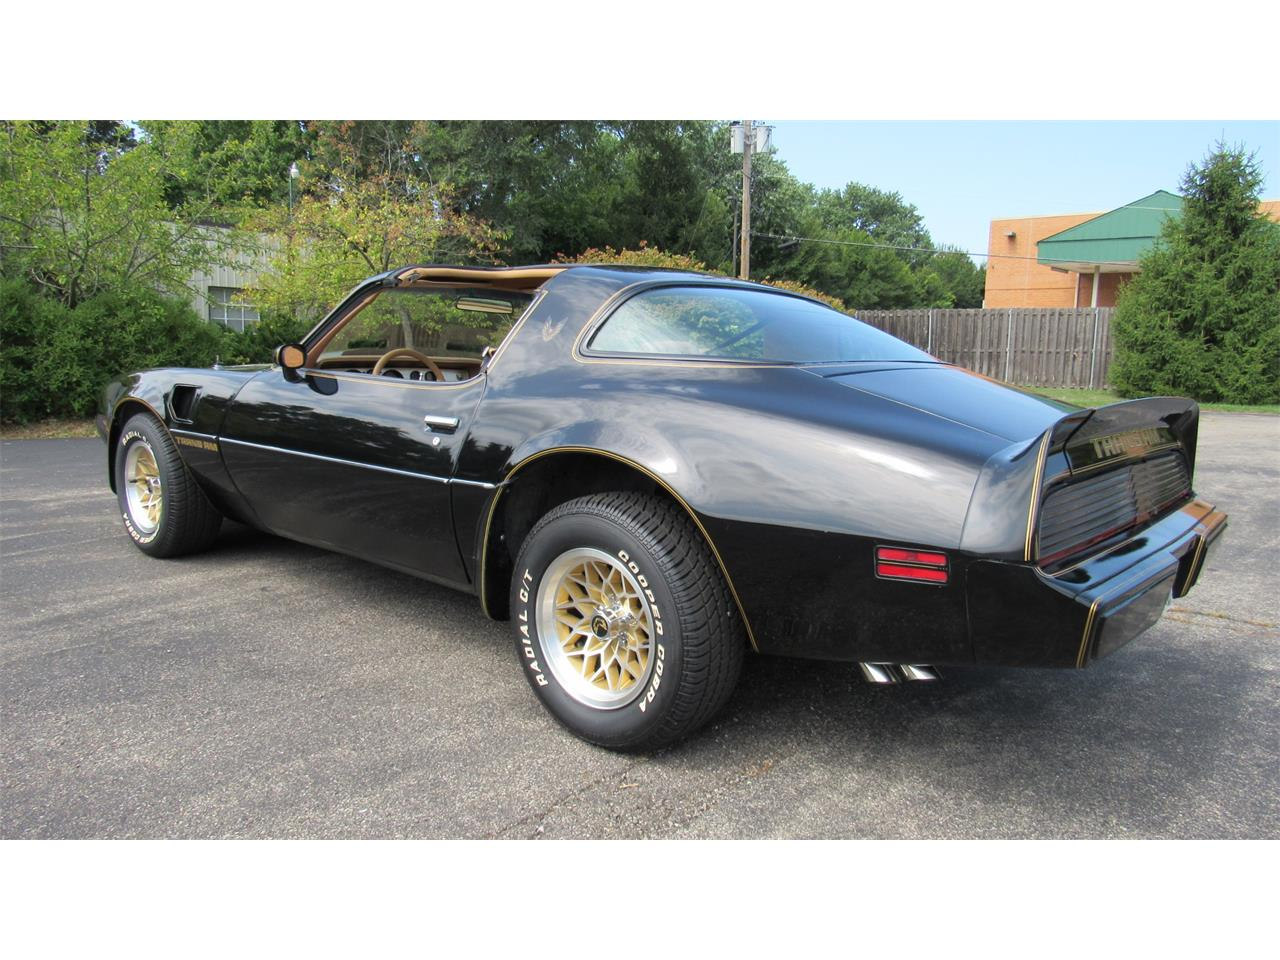 1979 Pontiac Firebird Trans Am for sale in Milford, OH – photo 20